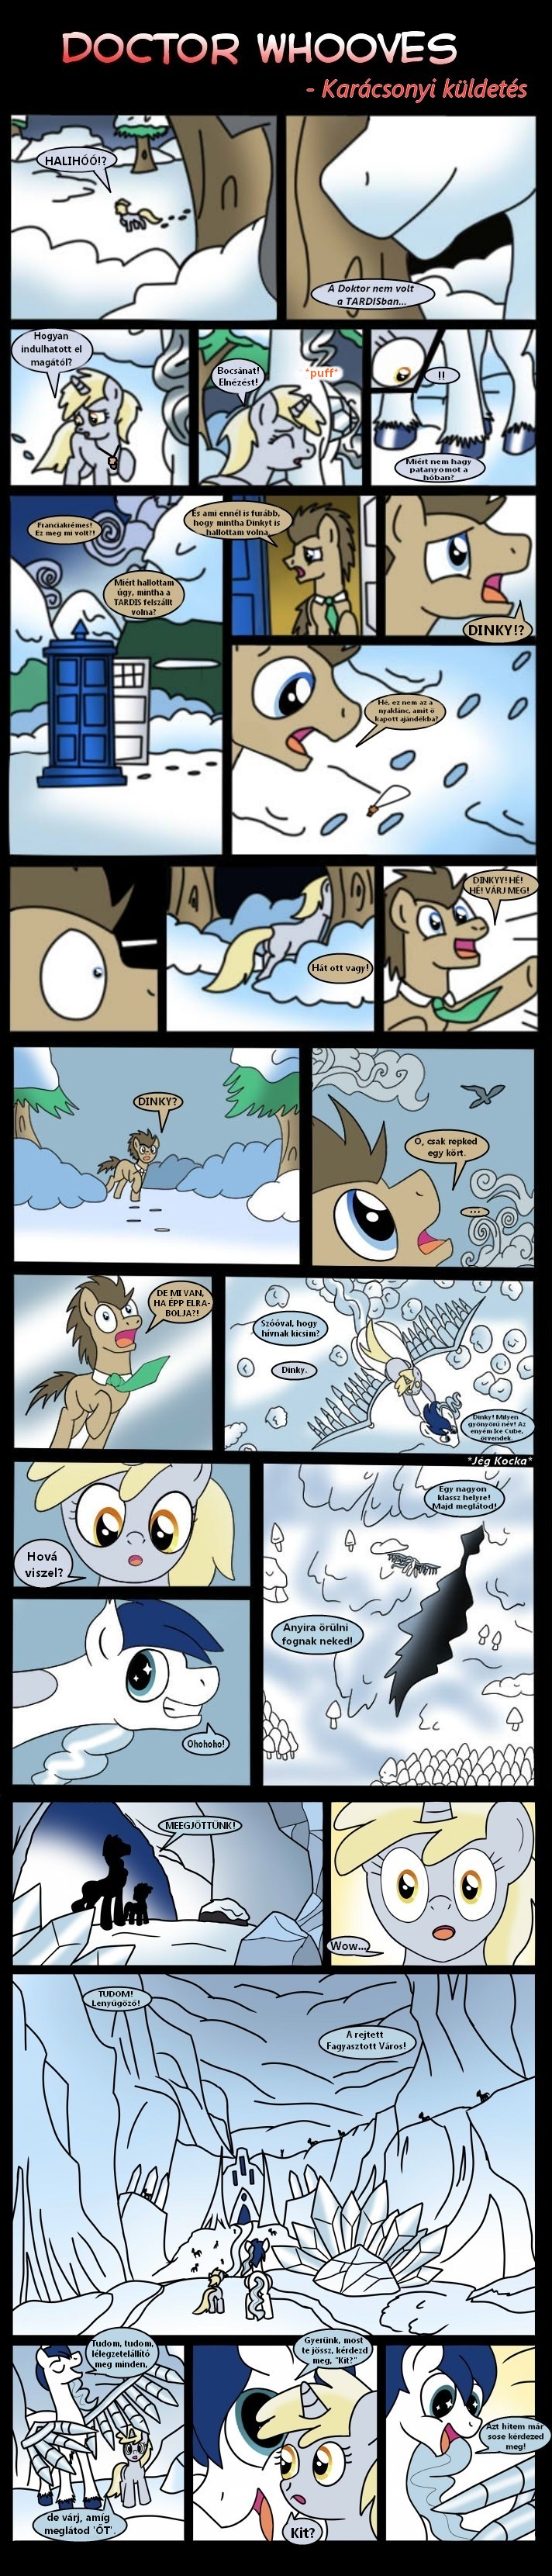 Doctor Whooves christmas special pt 2